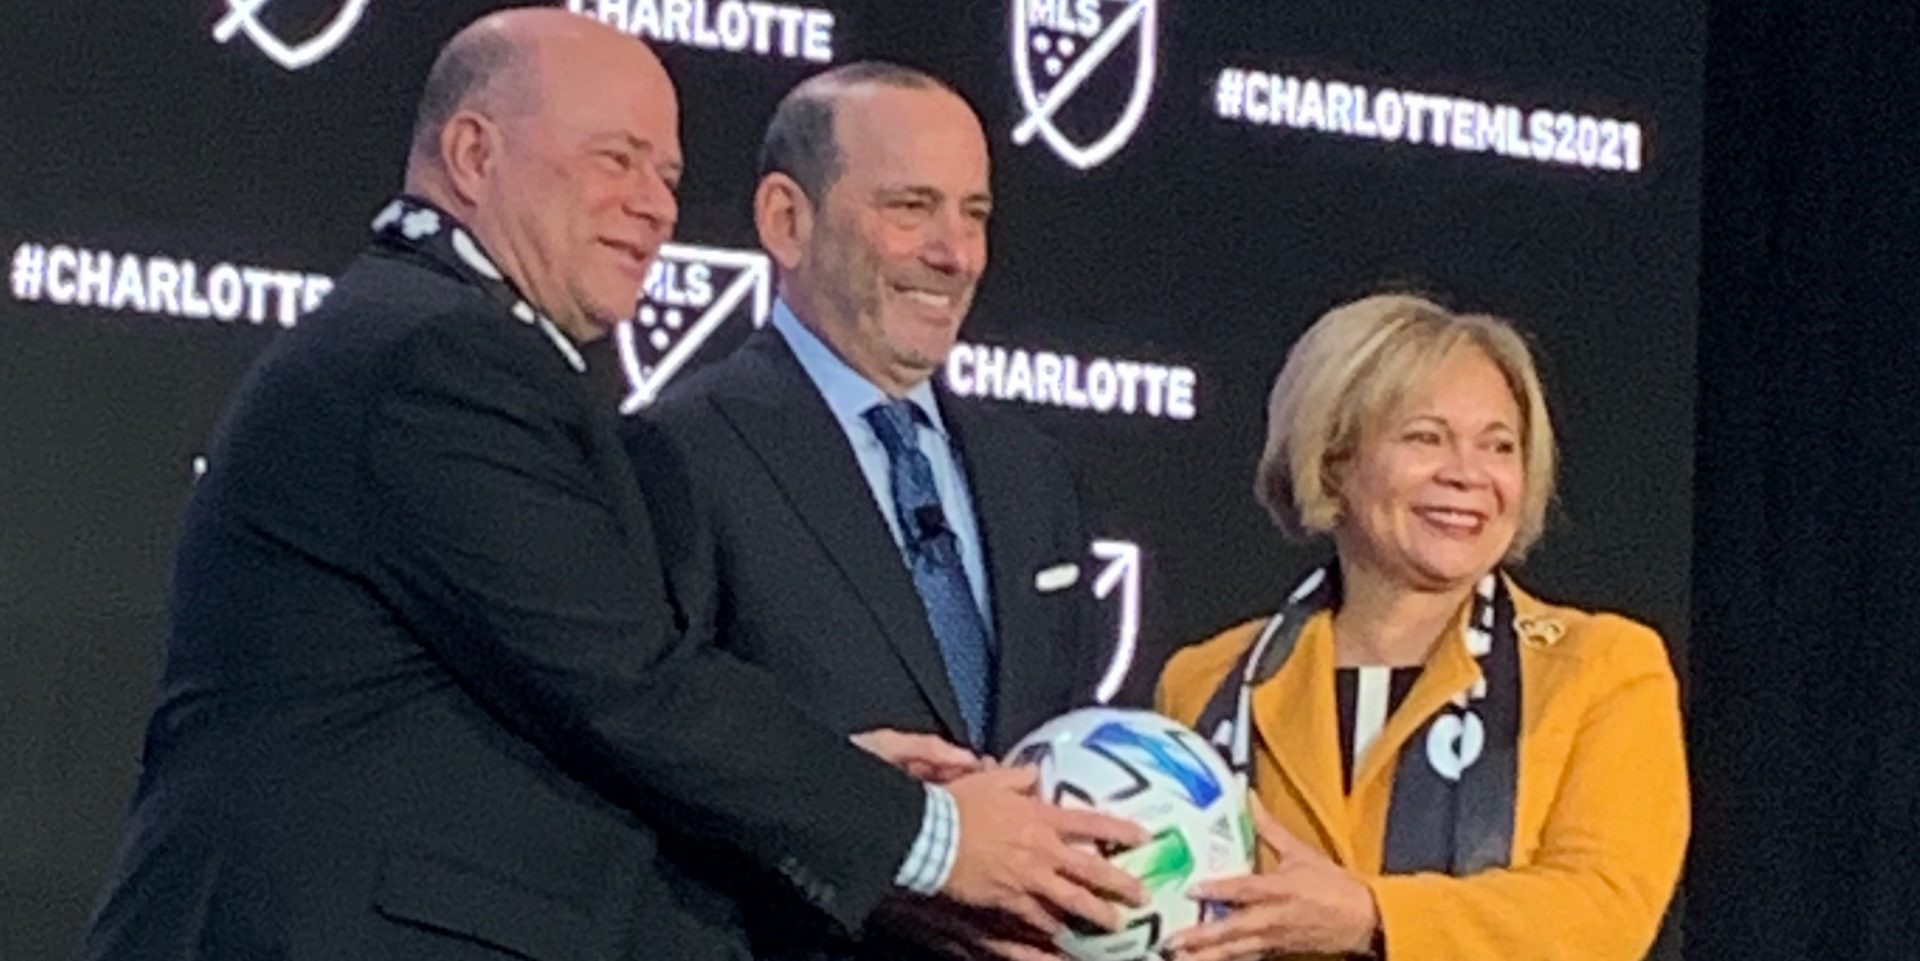 MLS Returns to Venue Roots in Charlotte